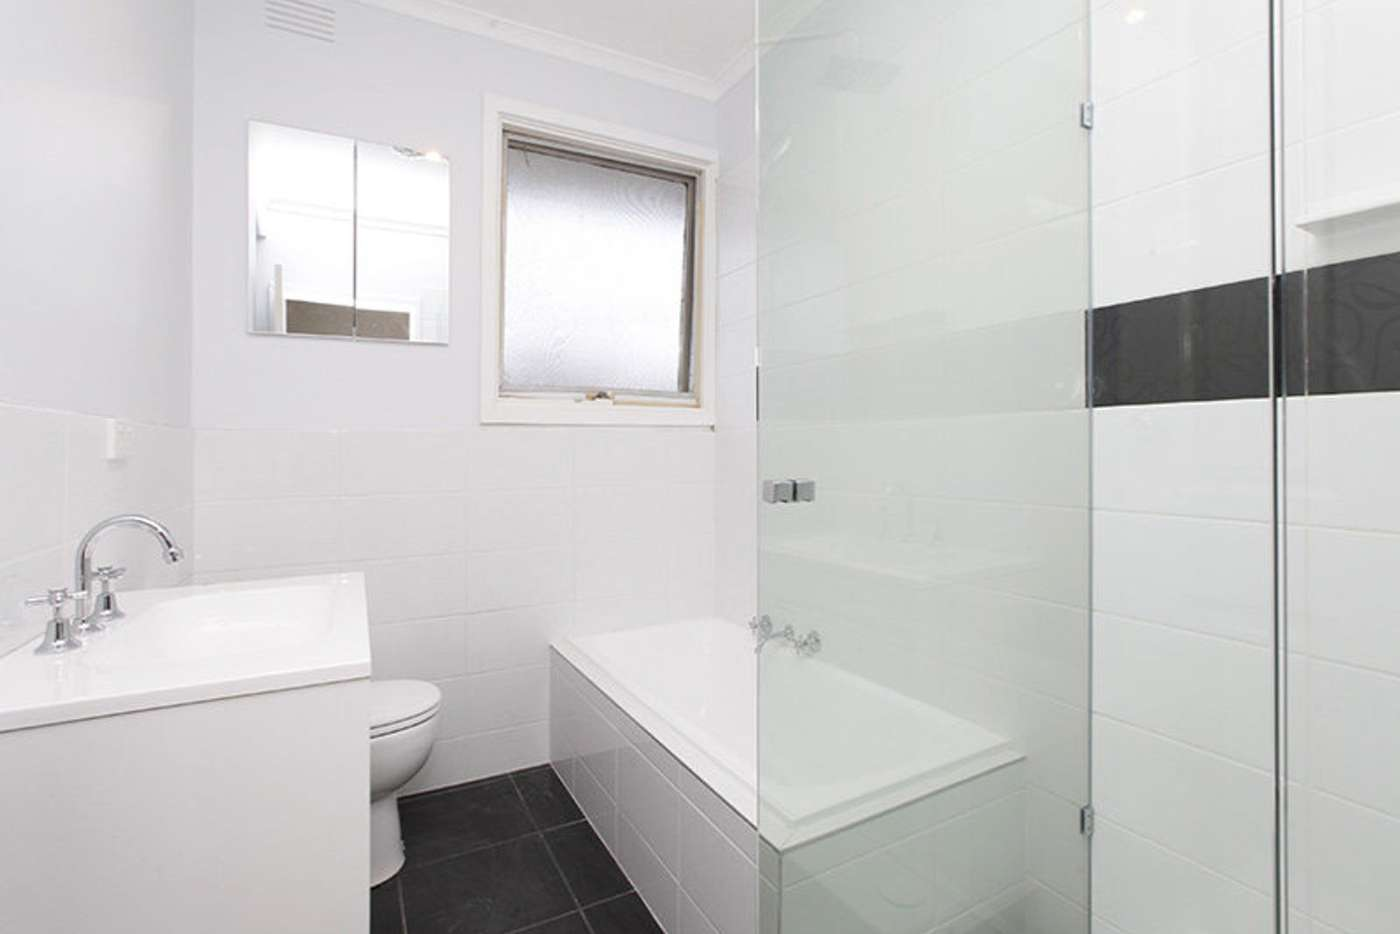 Sixth view of Homely house listing, 53 Twyford Street, Williamstown VIC 3016